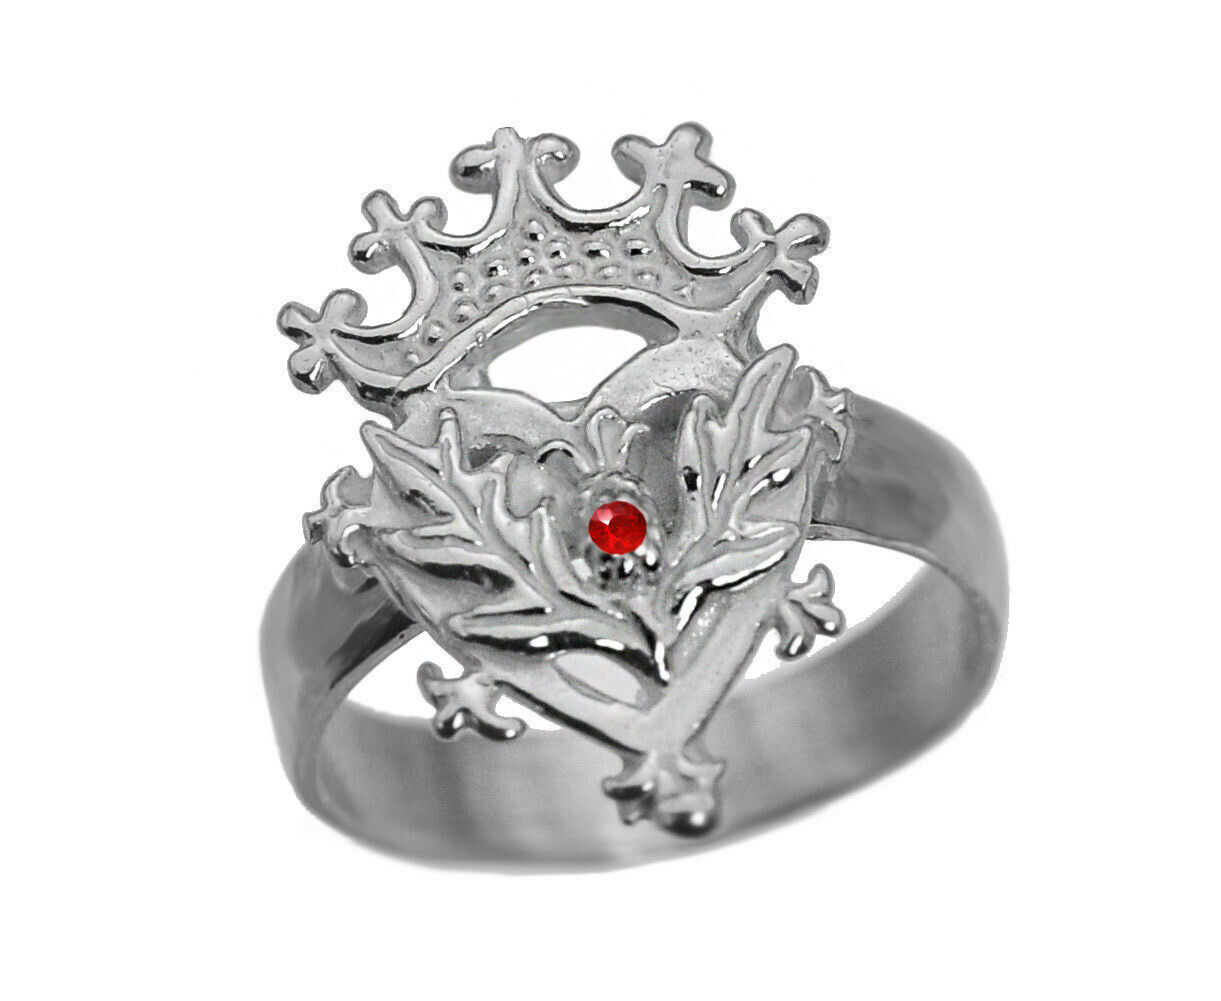 Scottish Luckenbooth Ring Sterling Silver 925 Heart Crown Ruby Thistle Celtic